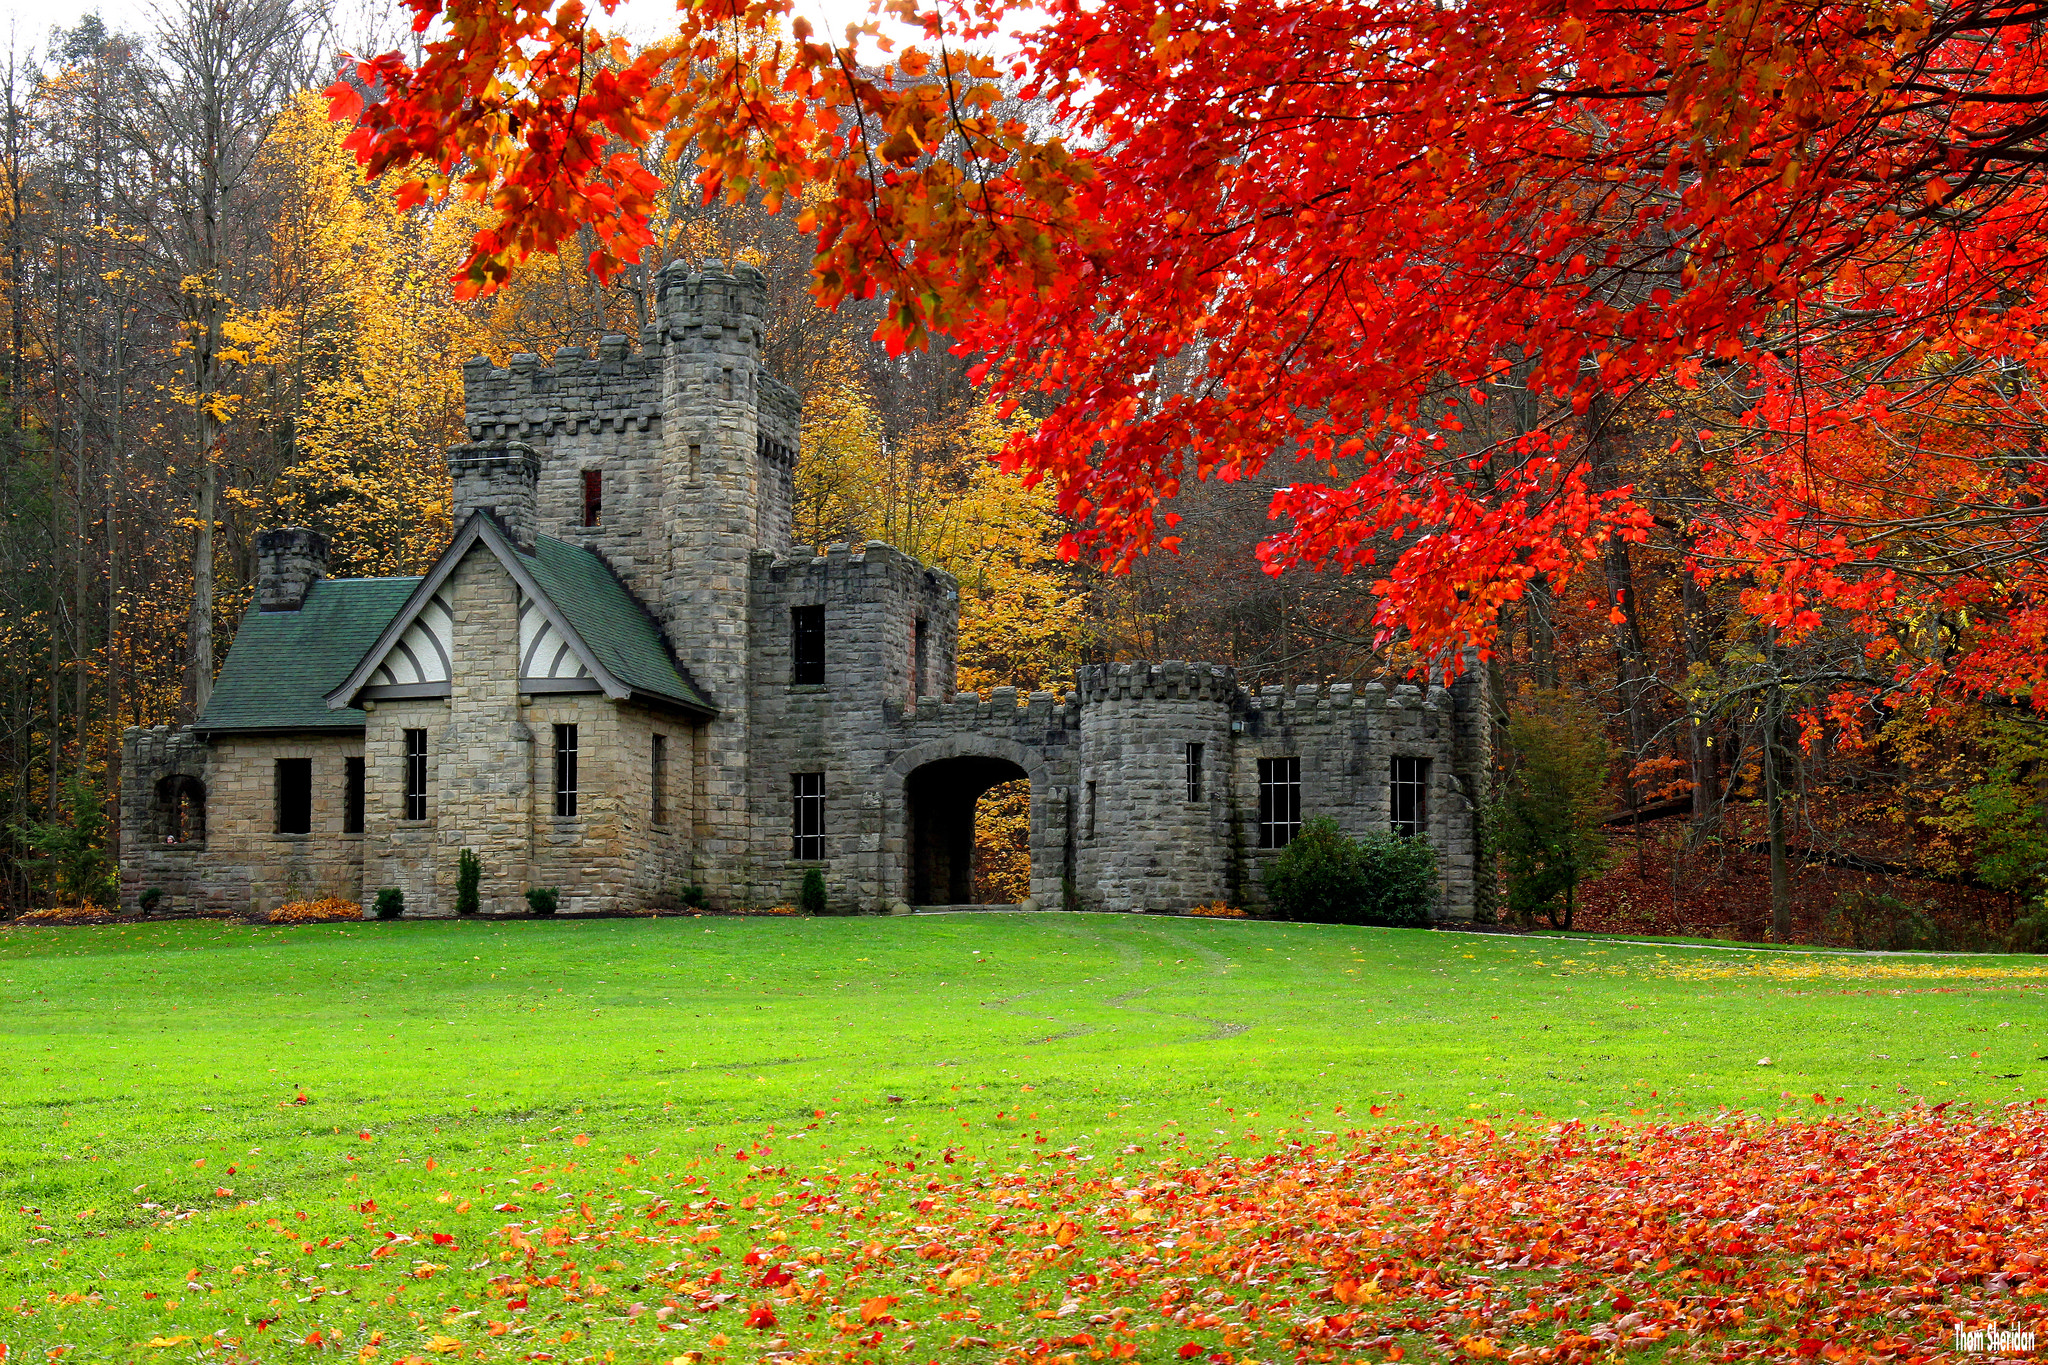 Fall Foliage Wallpaper Widescreen Castle In Autumn Hd Wallpaper Background Image